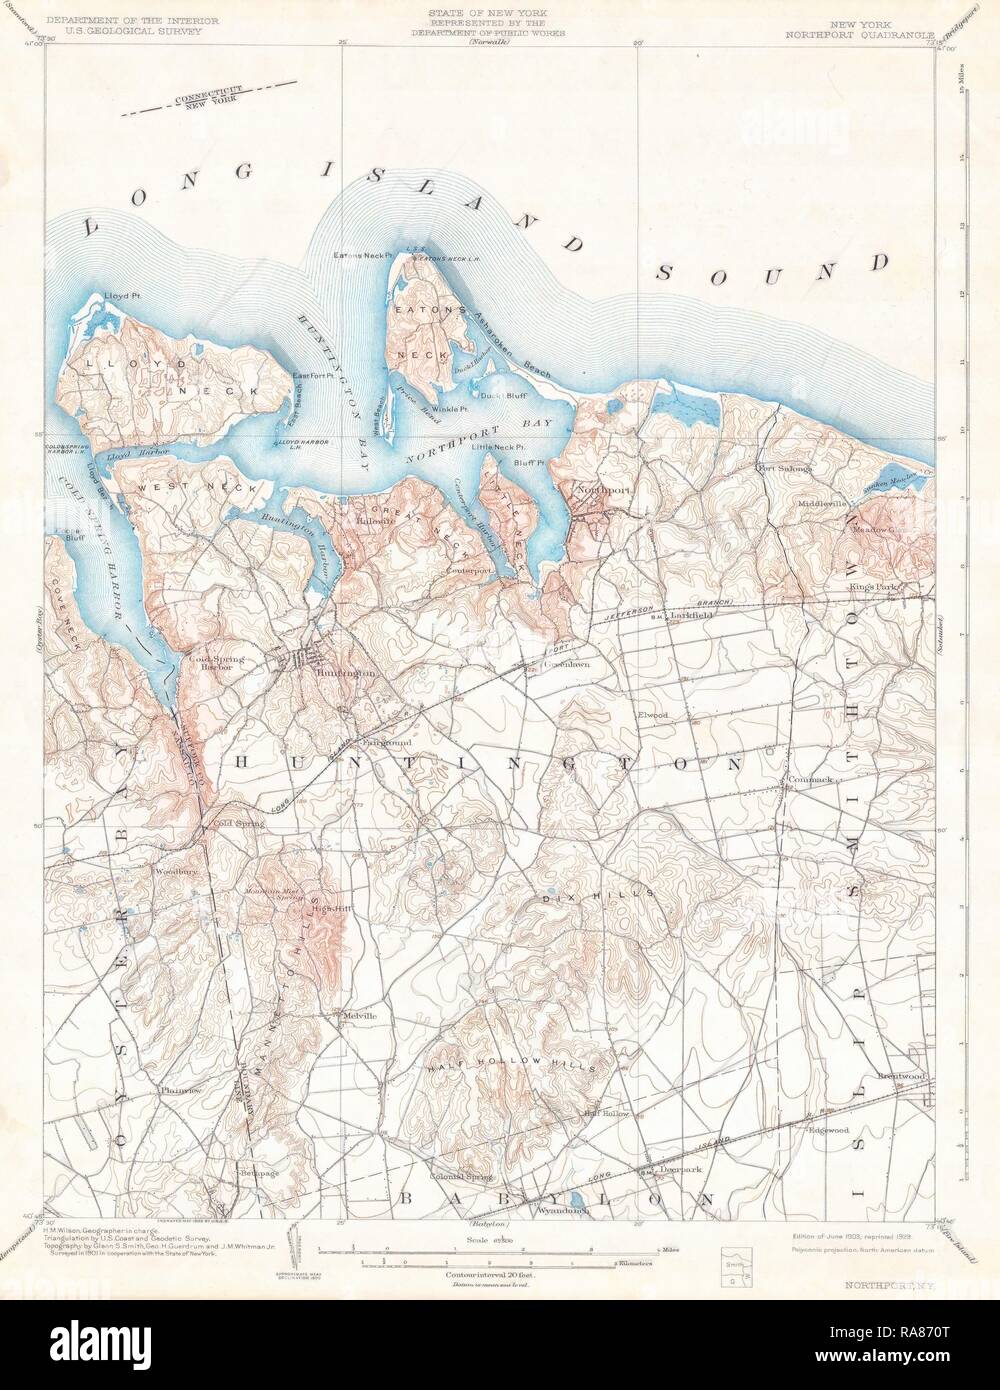 Huntington New York Map.1900 U S G S Map Of Huntington And Northport Long Island New